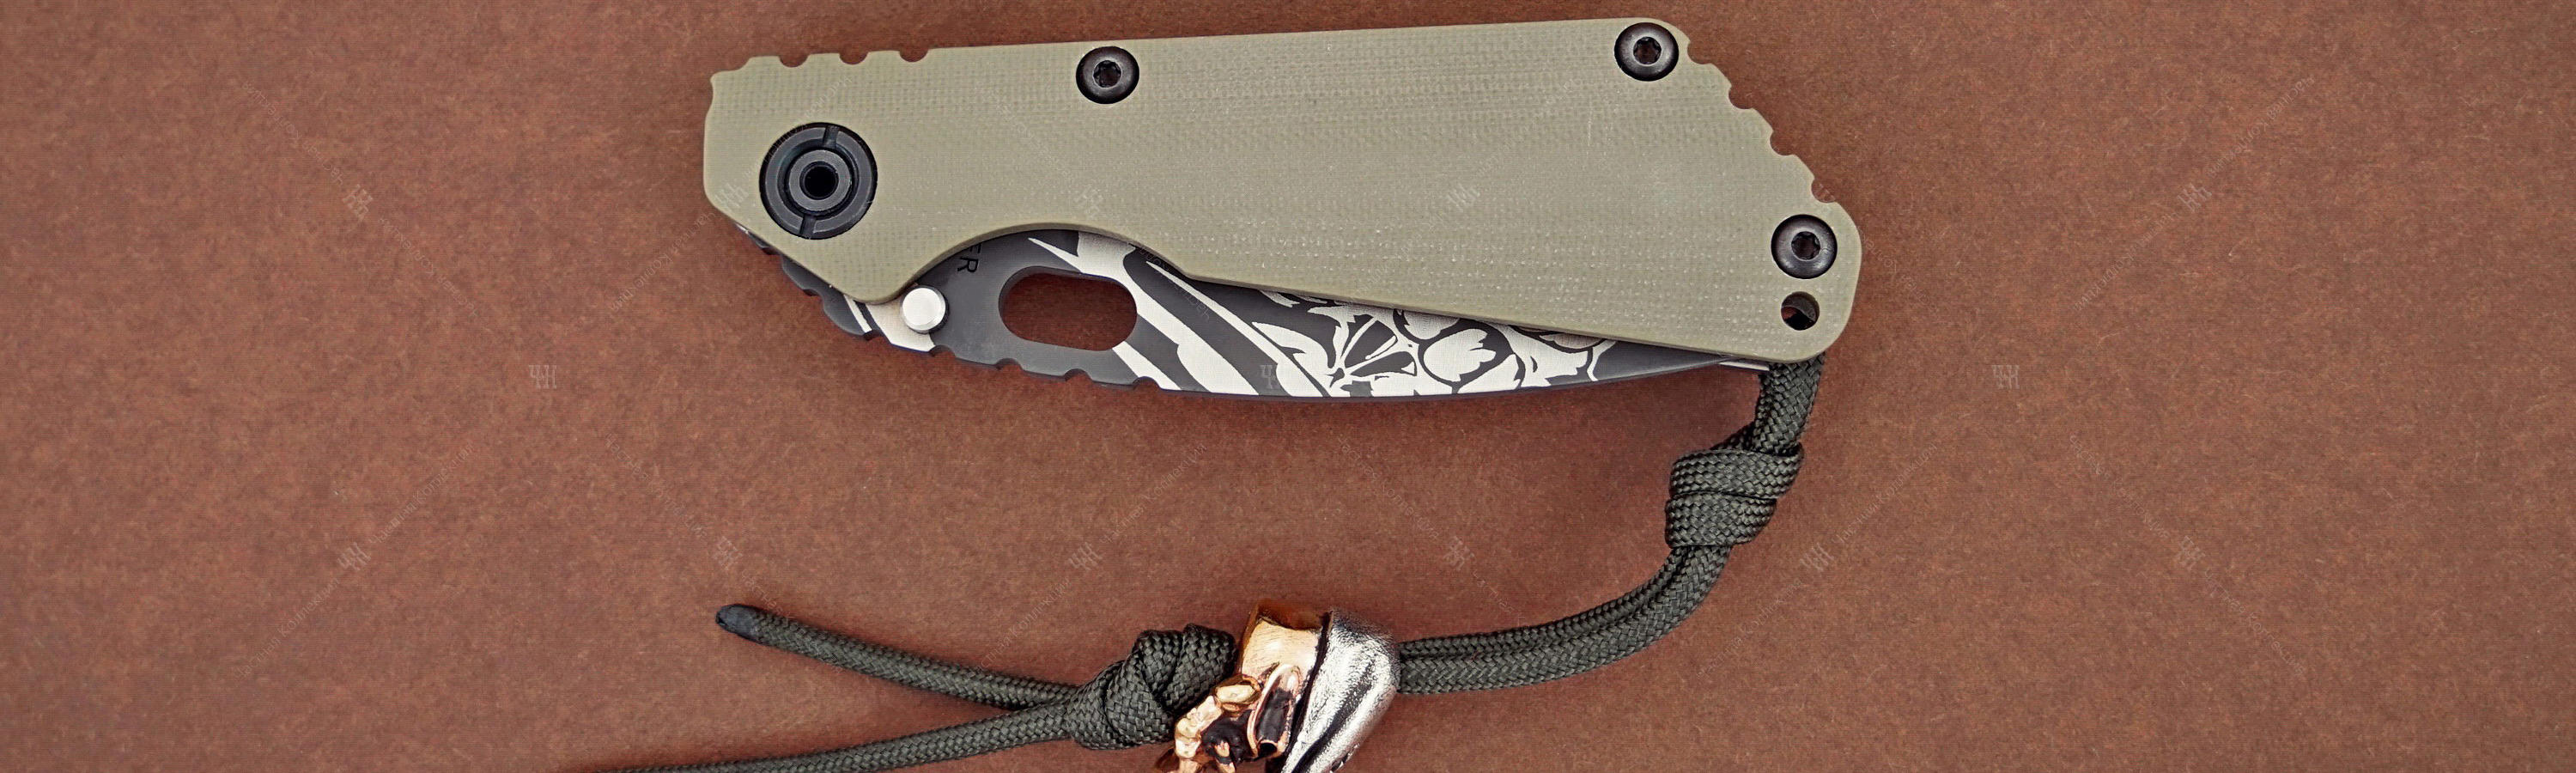 starlingear folding knife